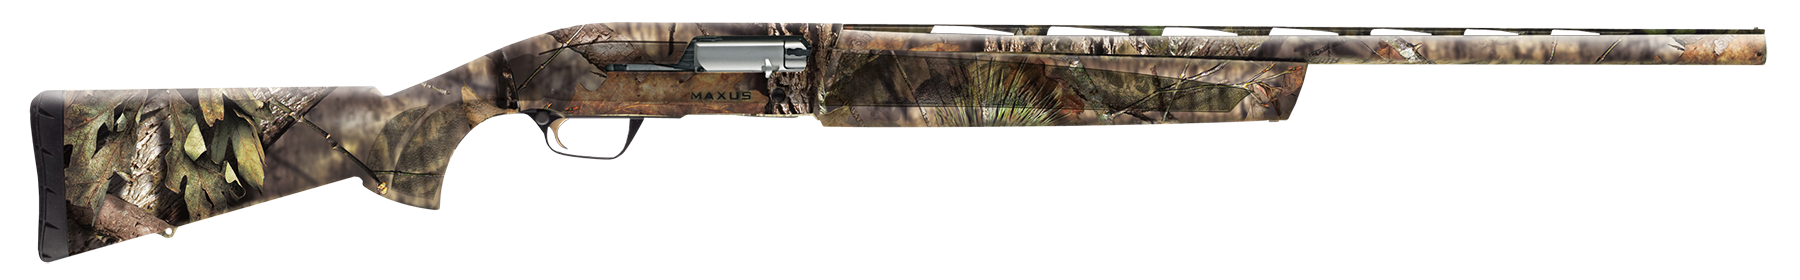 Browning Maxus All Purpose Semi-Auto Shotgun 3.5'' 12 Gauge 26'' Camo - Synthetic - Mossy Oak Break-Up Country